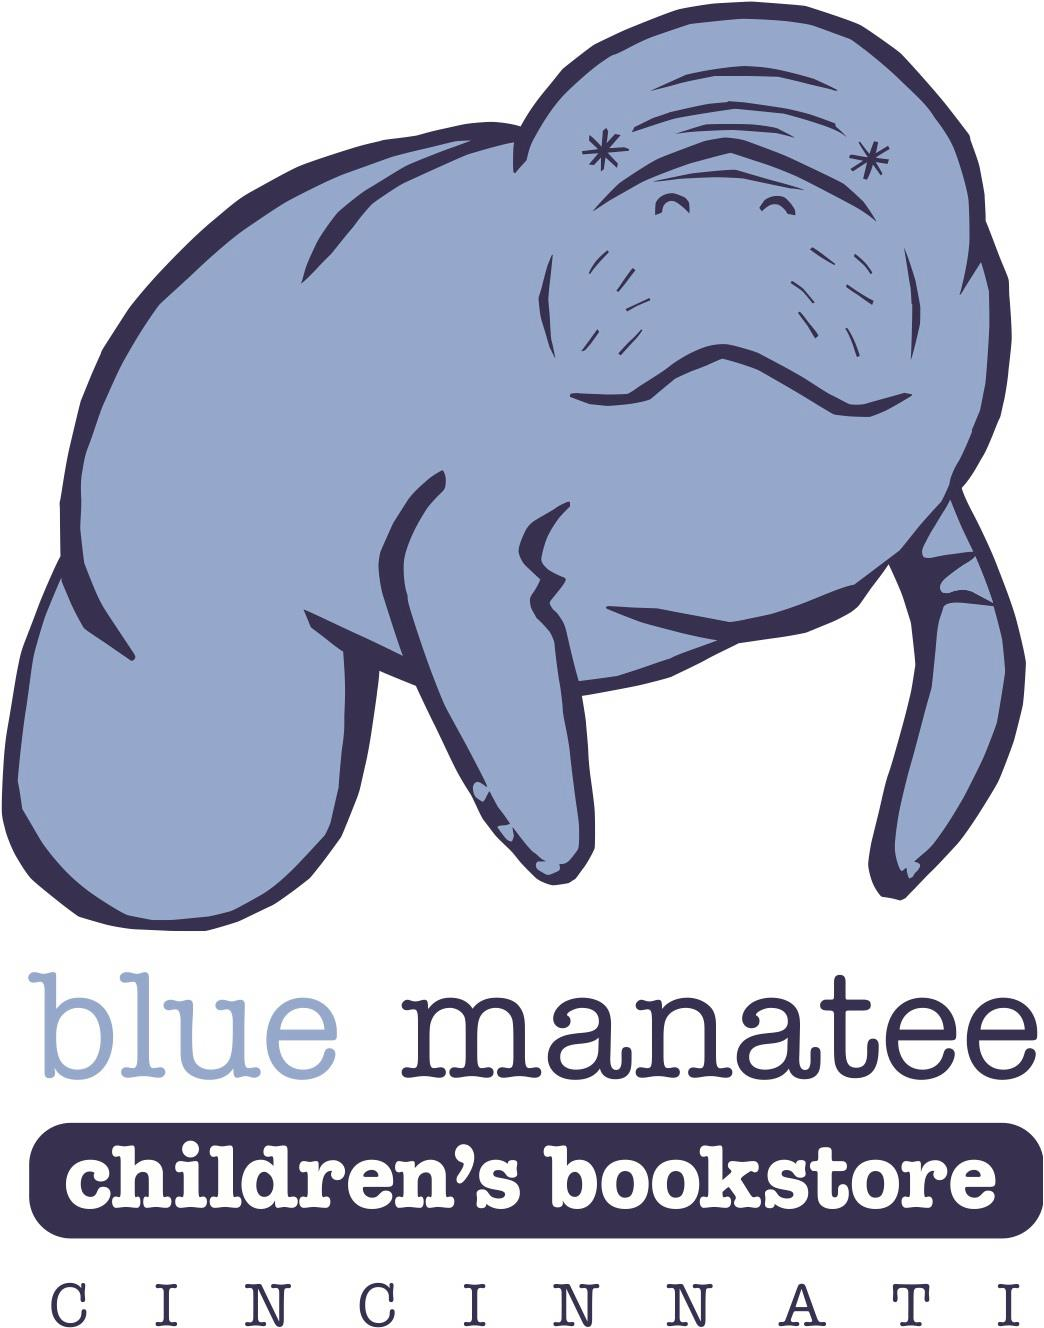 Blue Manatee Children's Bookstore